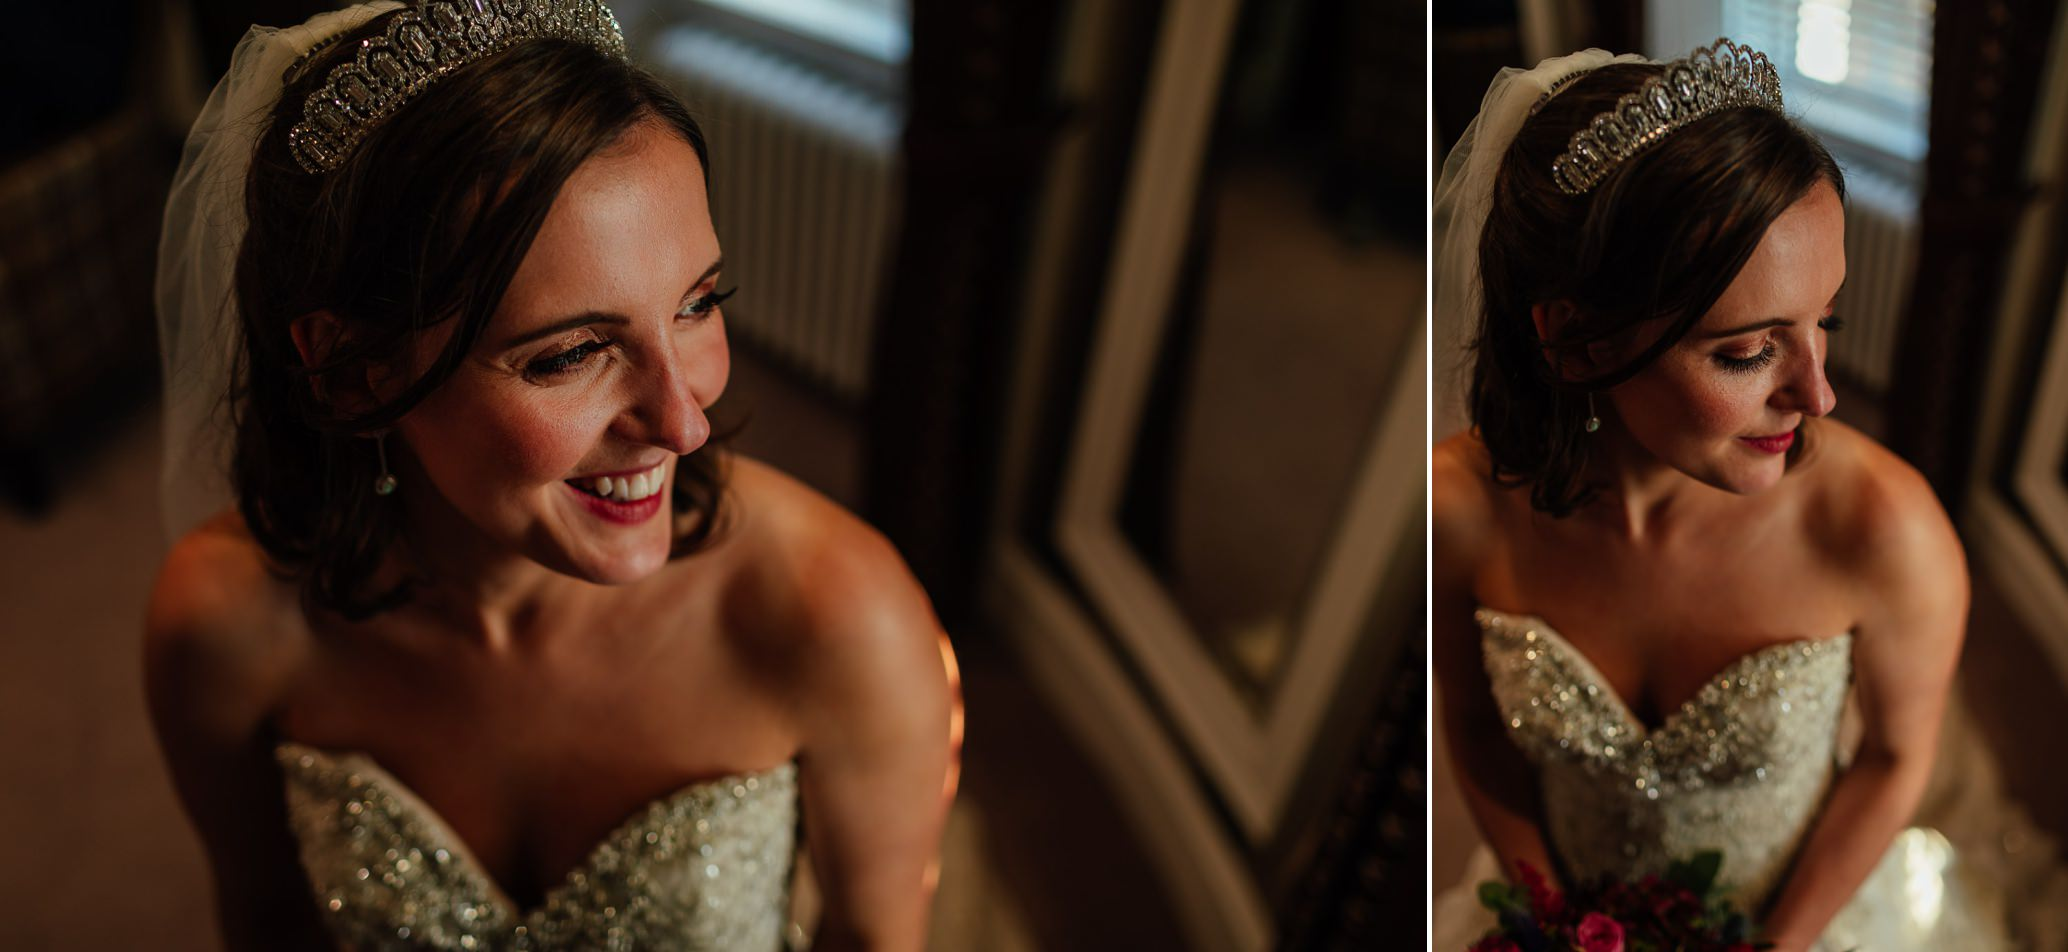 maryculter house hotel aberdeenshire wedding bride groom portraits indoors in sun october